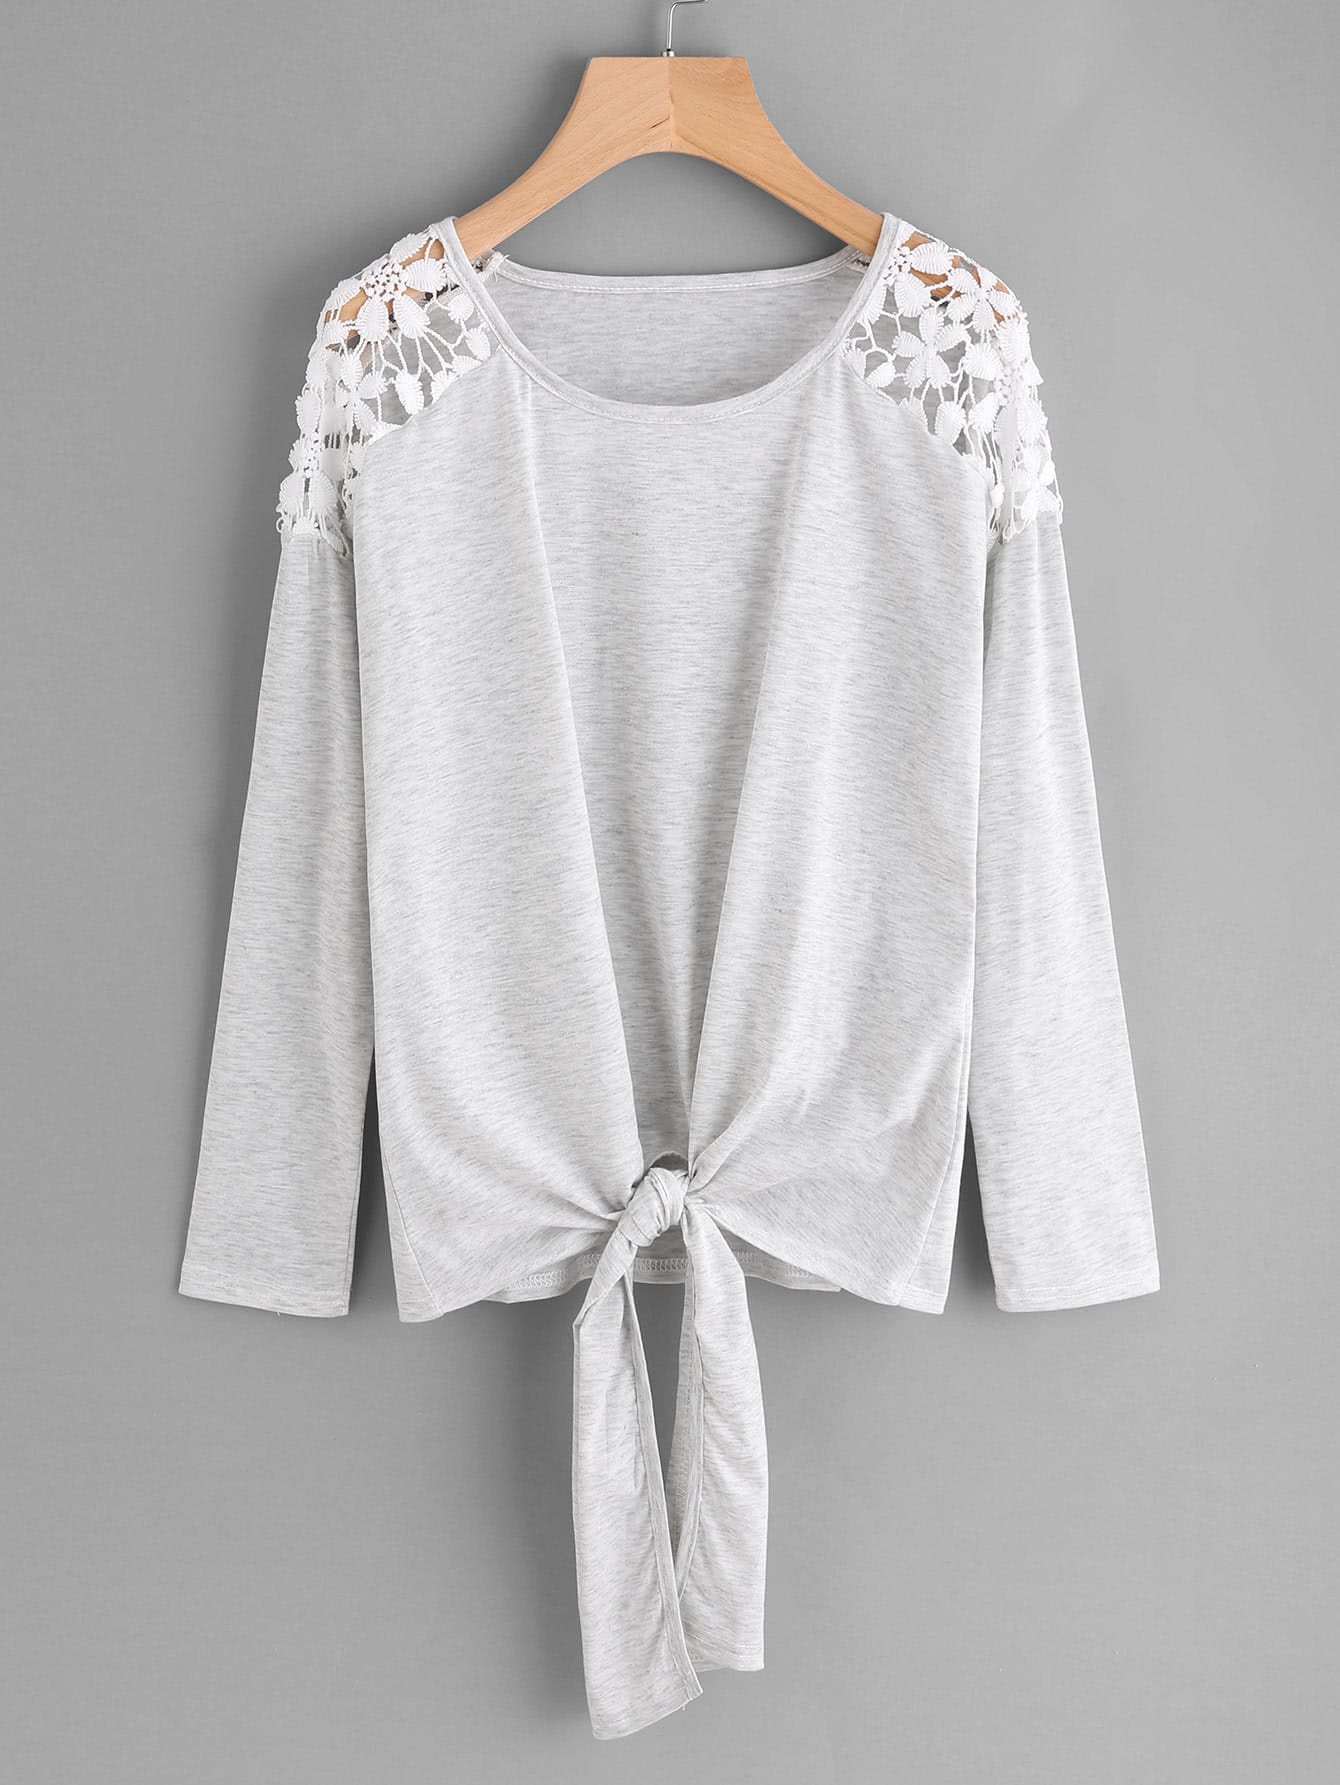 Hollow Lace Shoulder Knot Front Tee hollow lace shoulder knot front tee